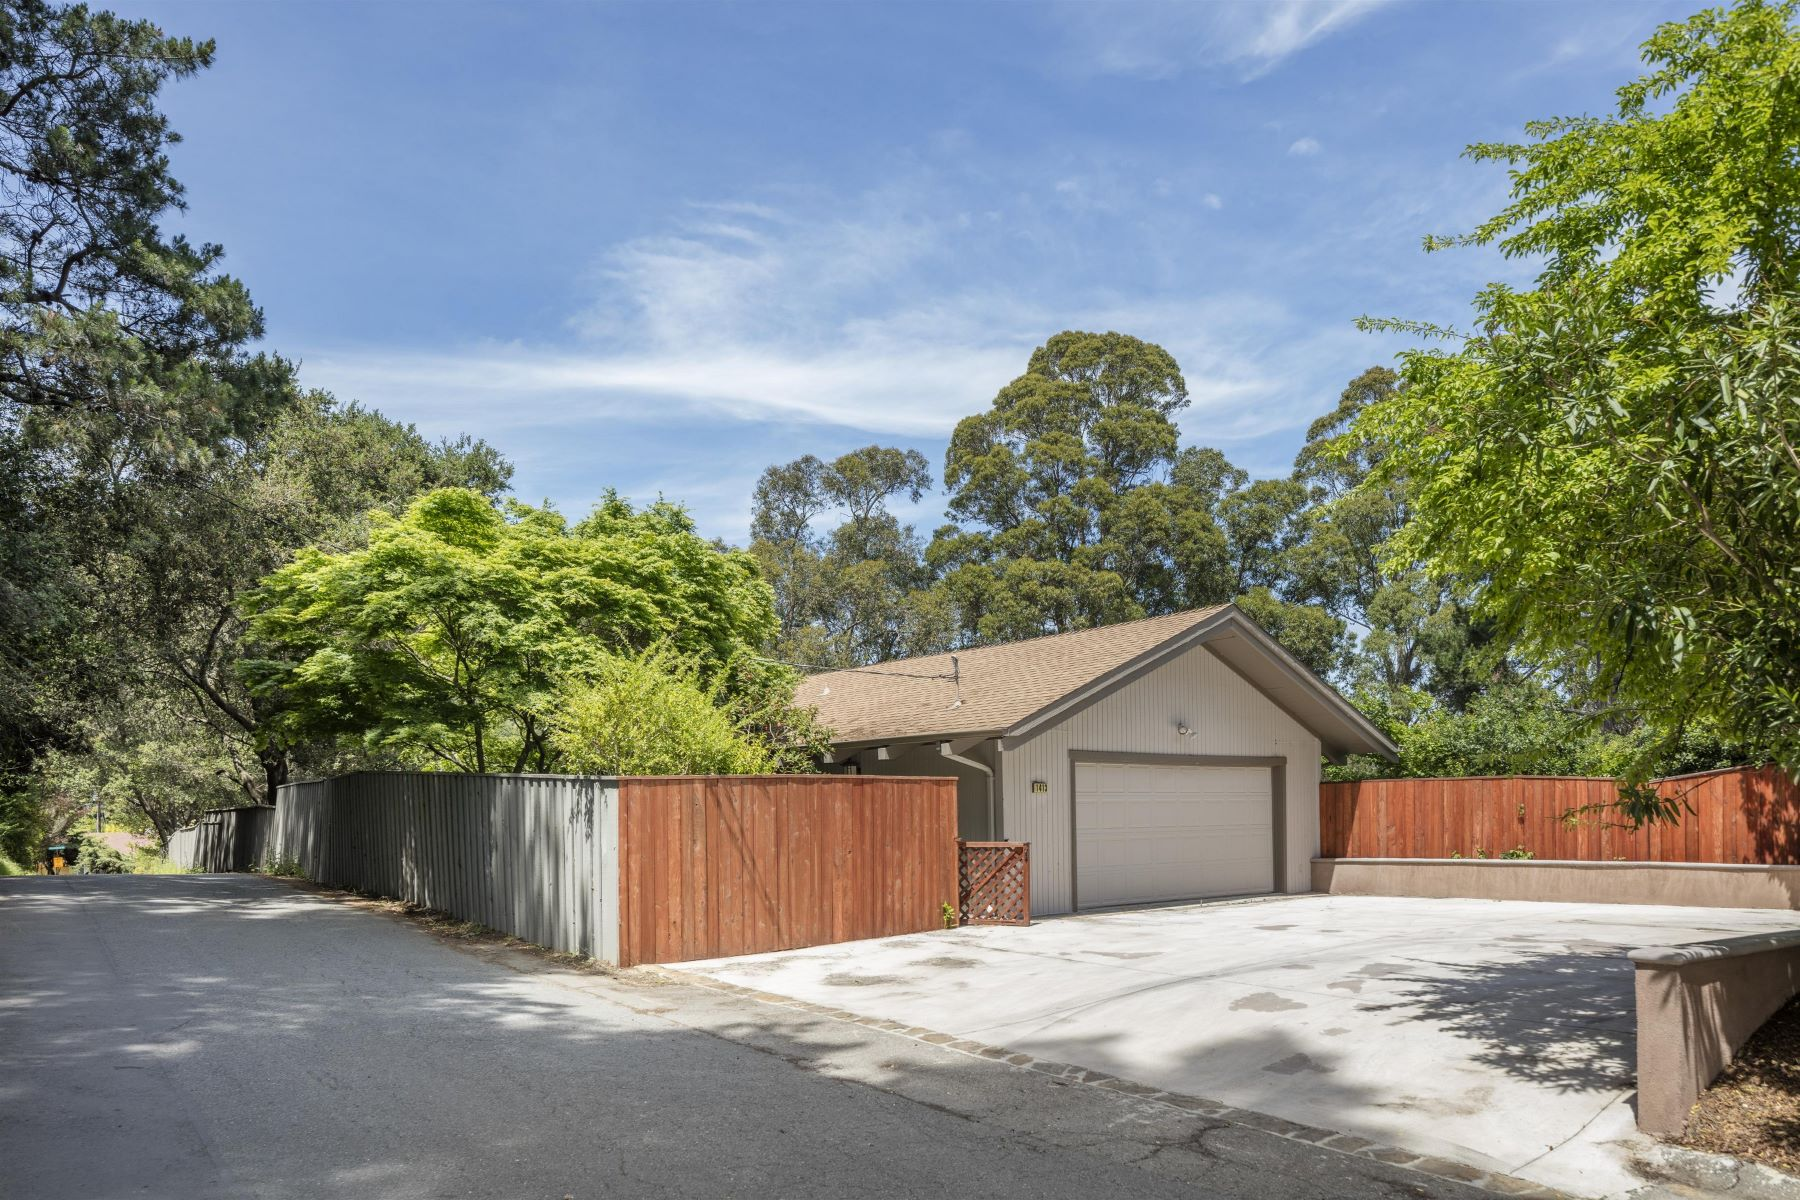 Single Family Home for Sale at Spacious and Light-Filled Home on a Half Acre Lot 1413 Casa Buena Corte Madera, California 94925 United States